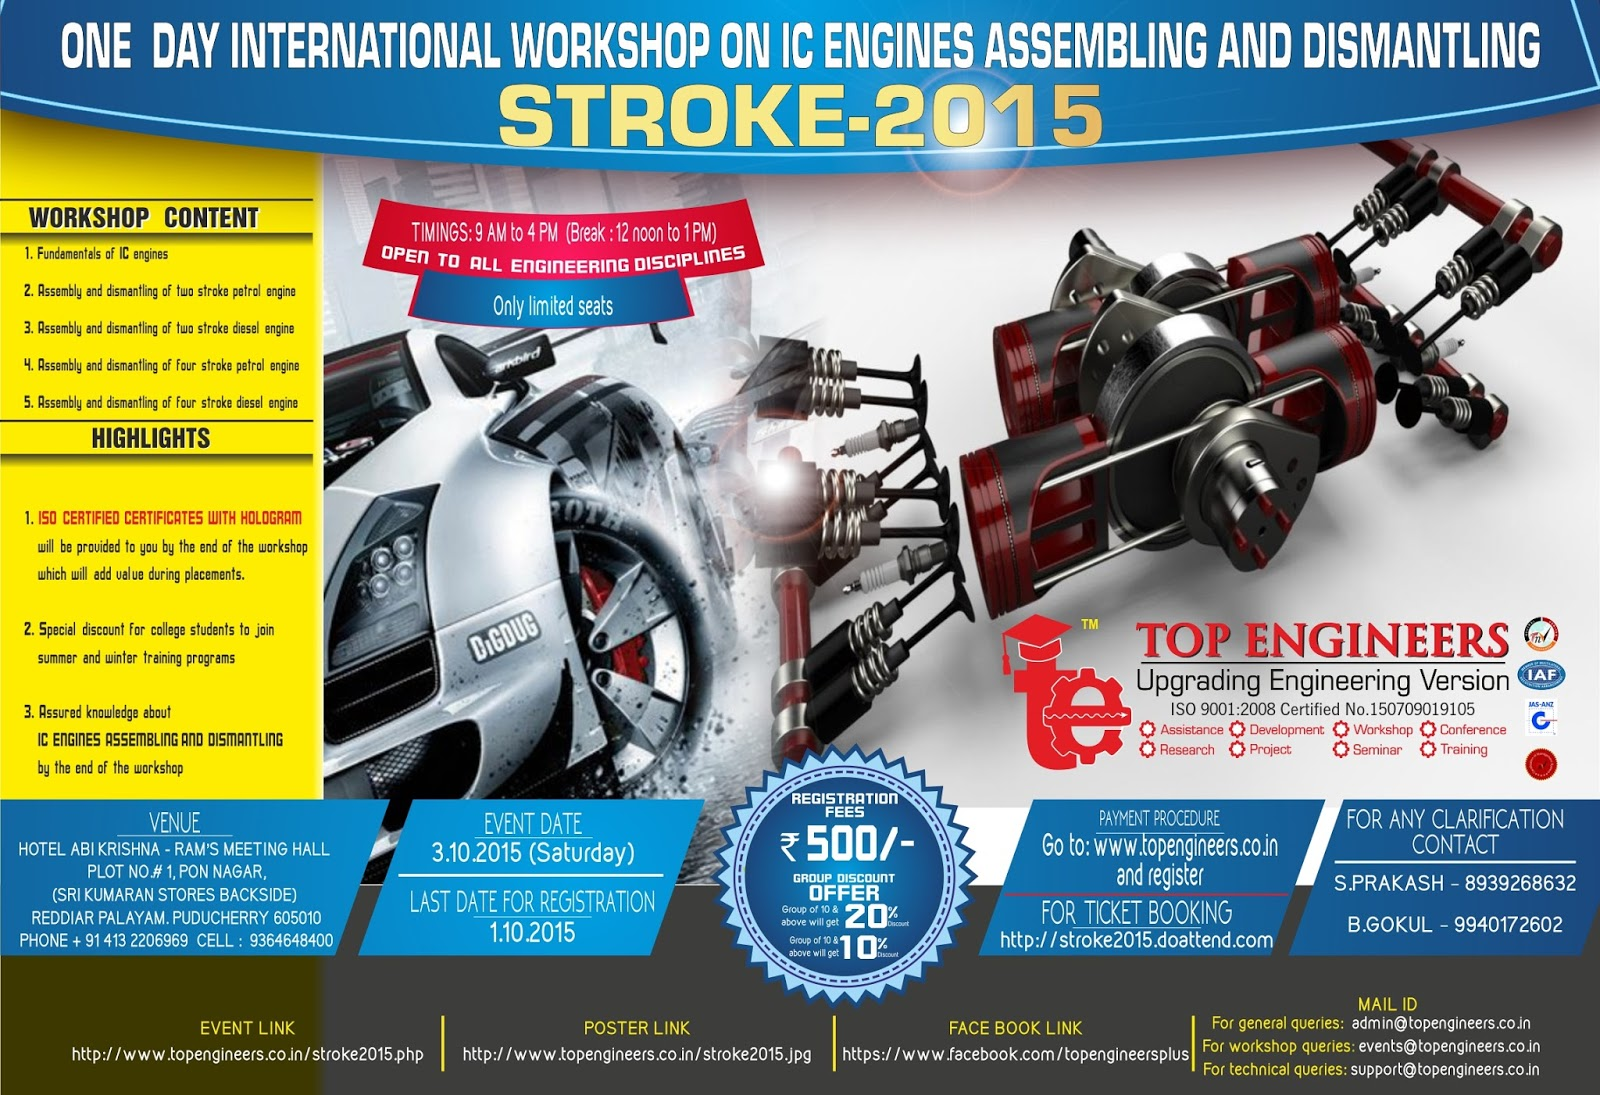 One Day International Workshop on IC Engines Assembling and Dismantling (Stroke 2015)